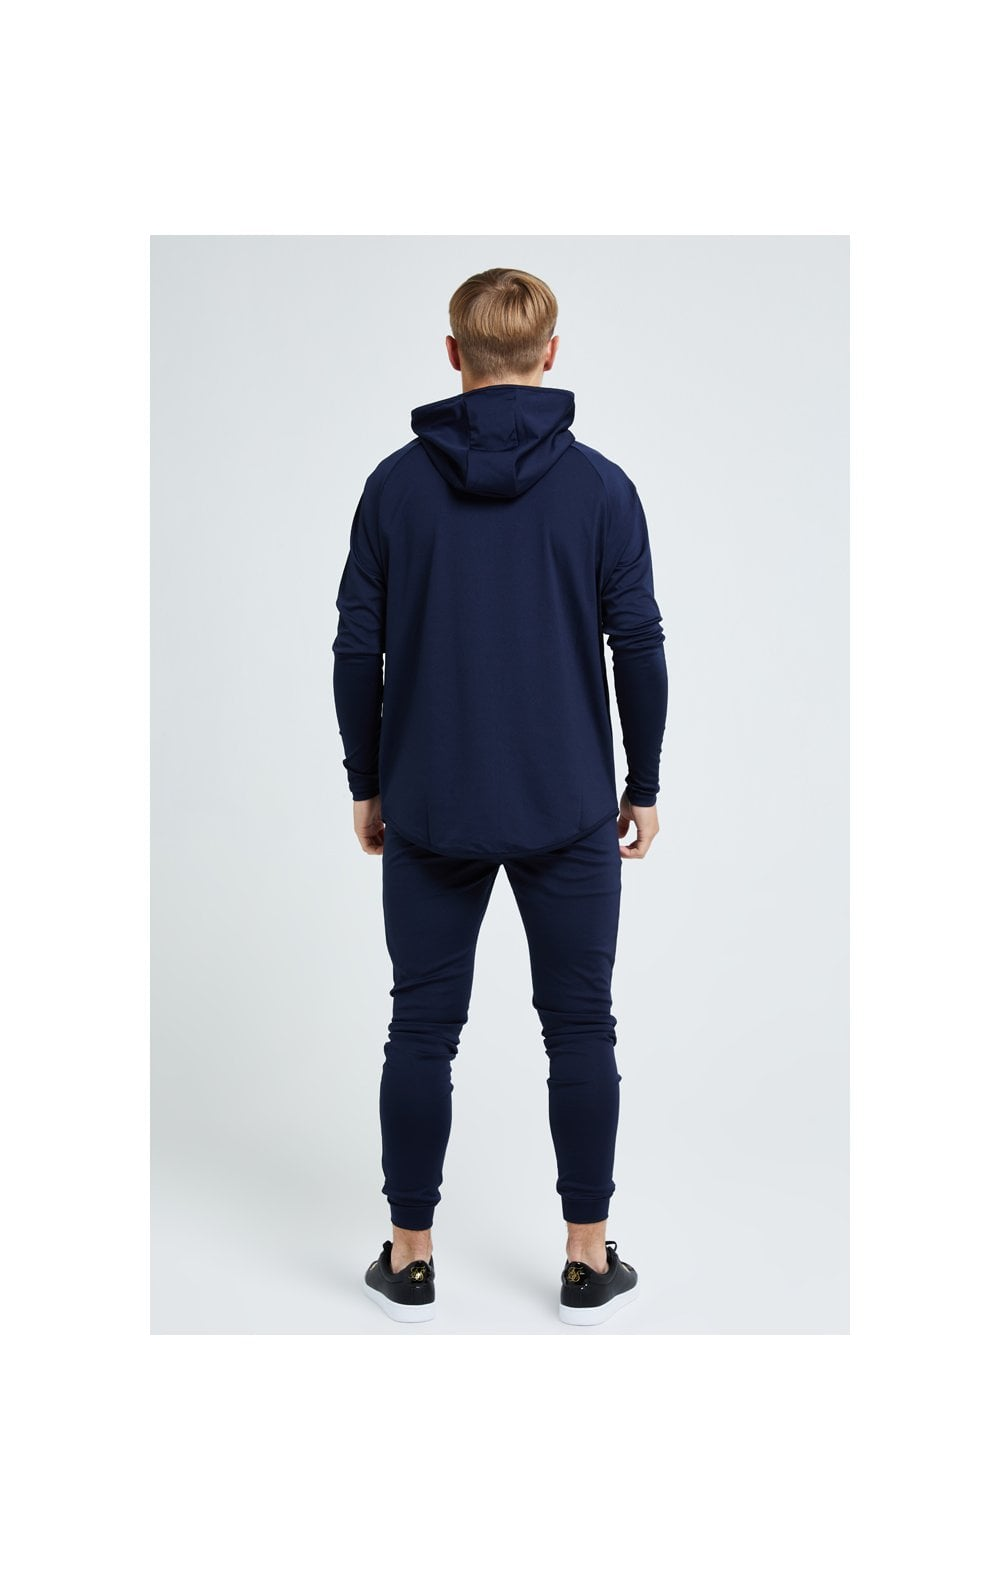 Load image into Gallery viewer, Illusive London Core Athlete Hoodie - Navy (5)